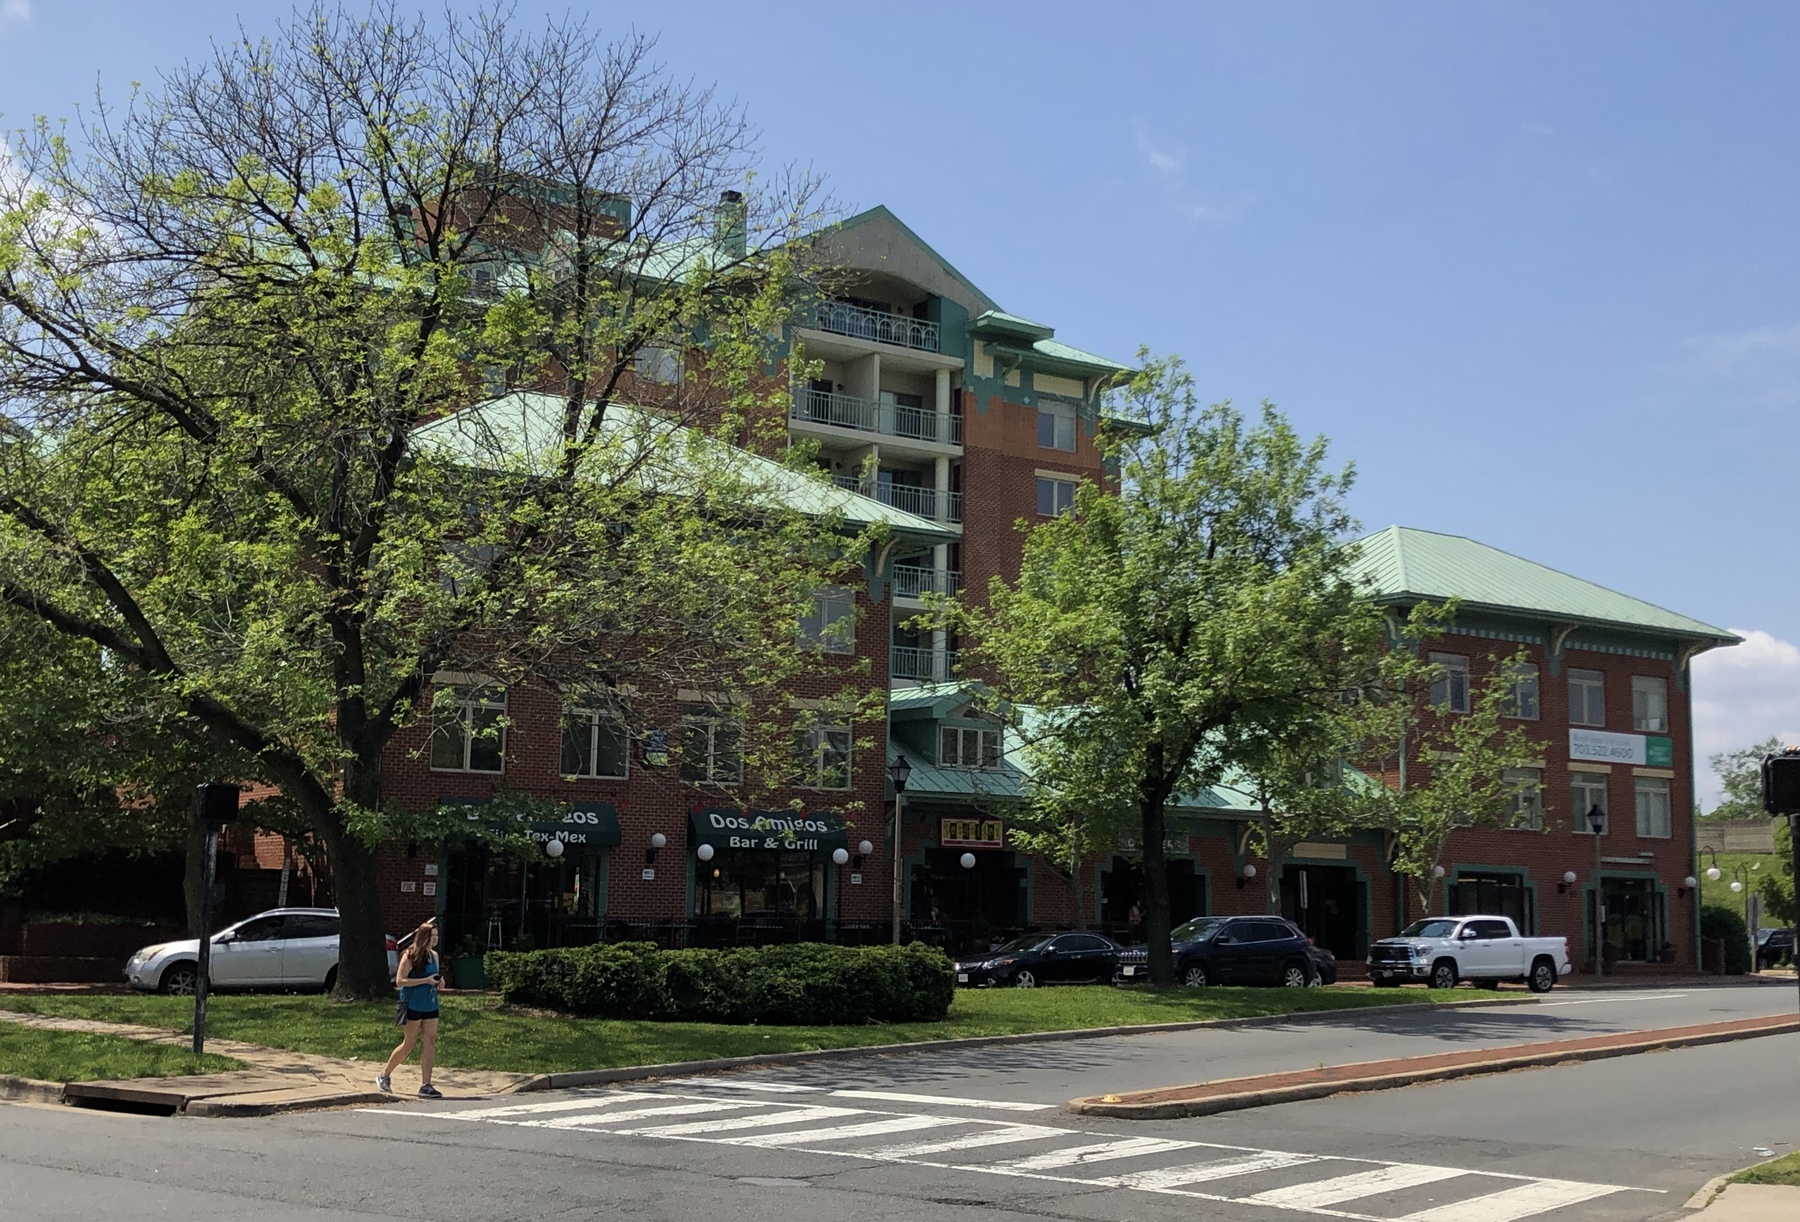 515-535 E Braddock Rd, Fairfax, VA Commercial condominium interest for sale